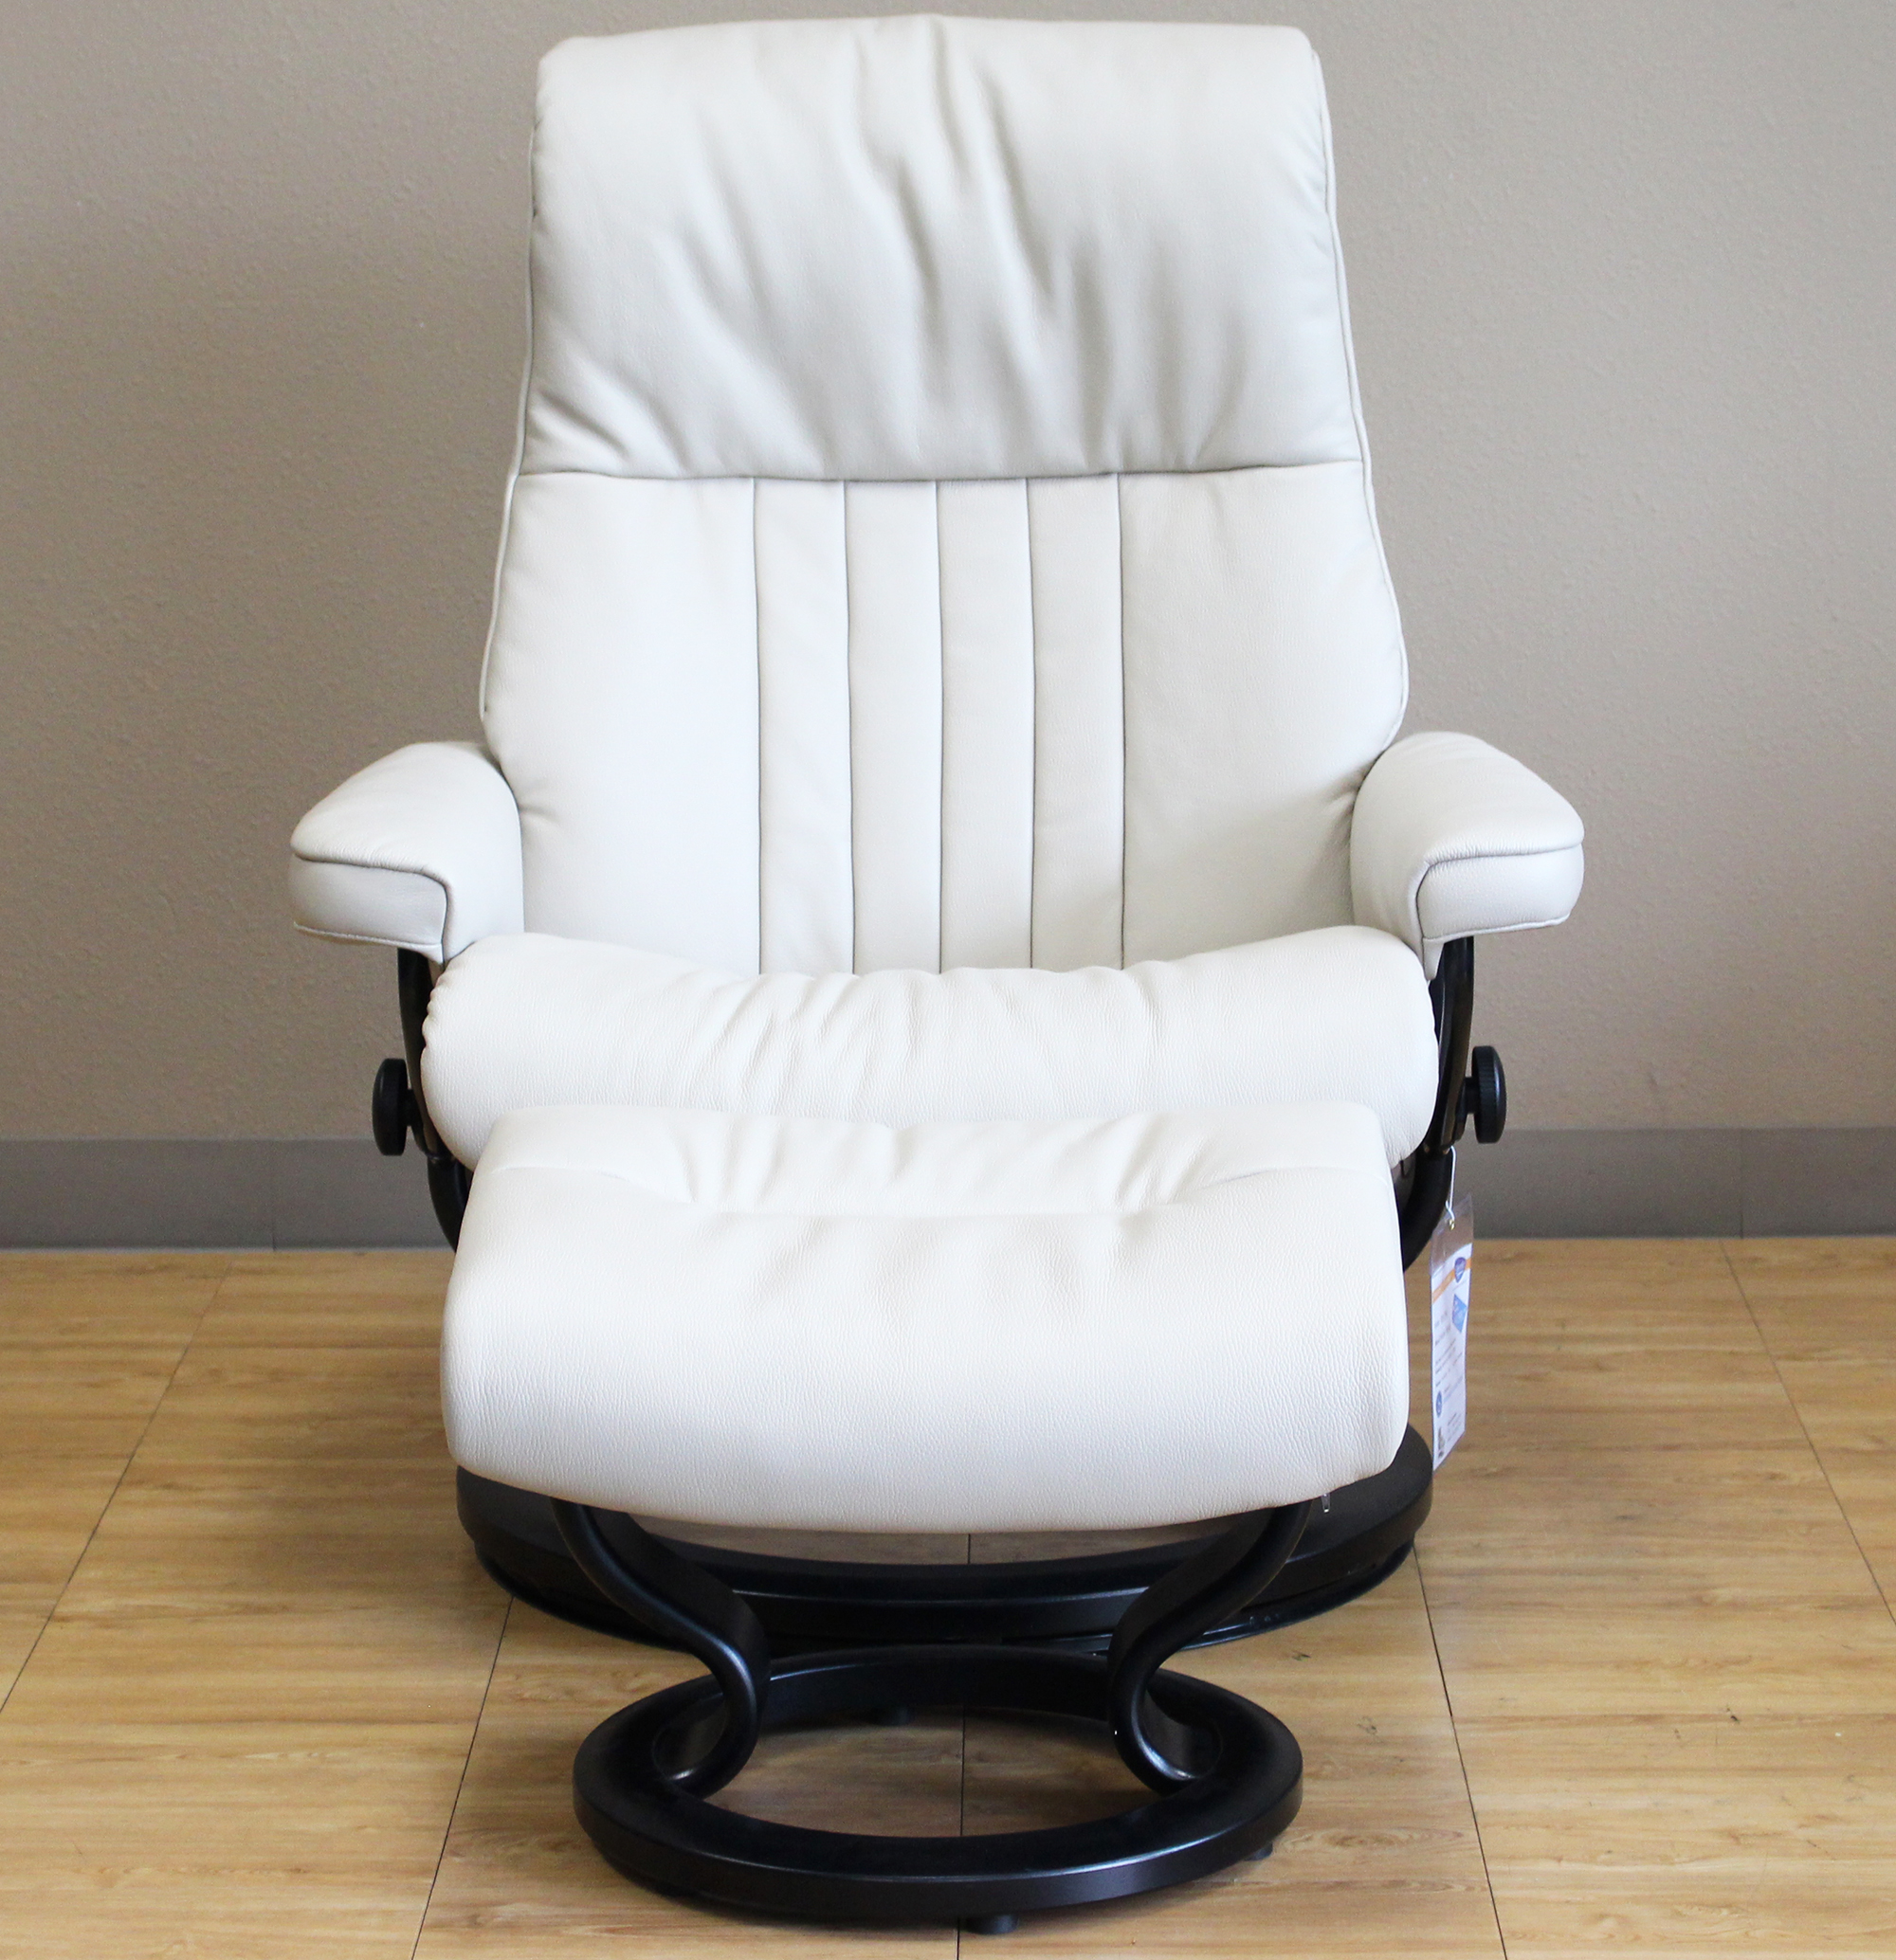 Stressless Crown Cori Vanilla Leather by Ekornes Stressless